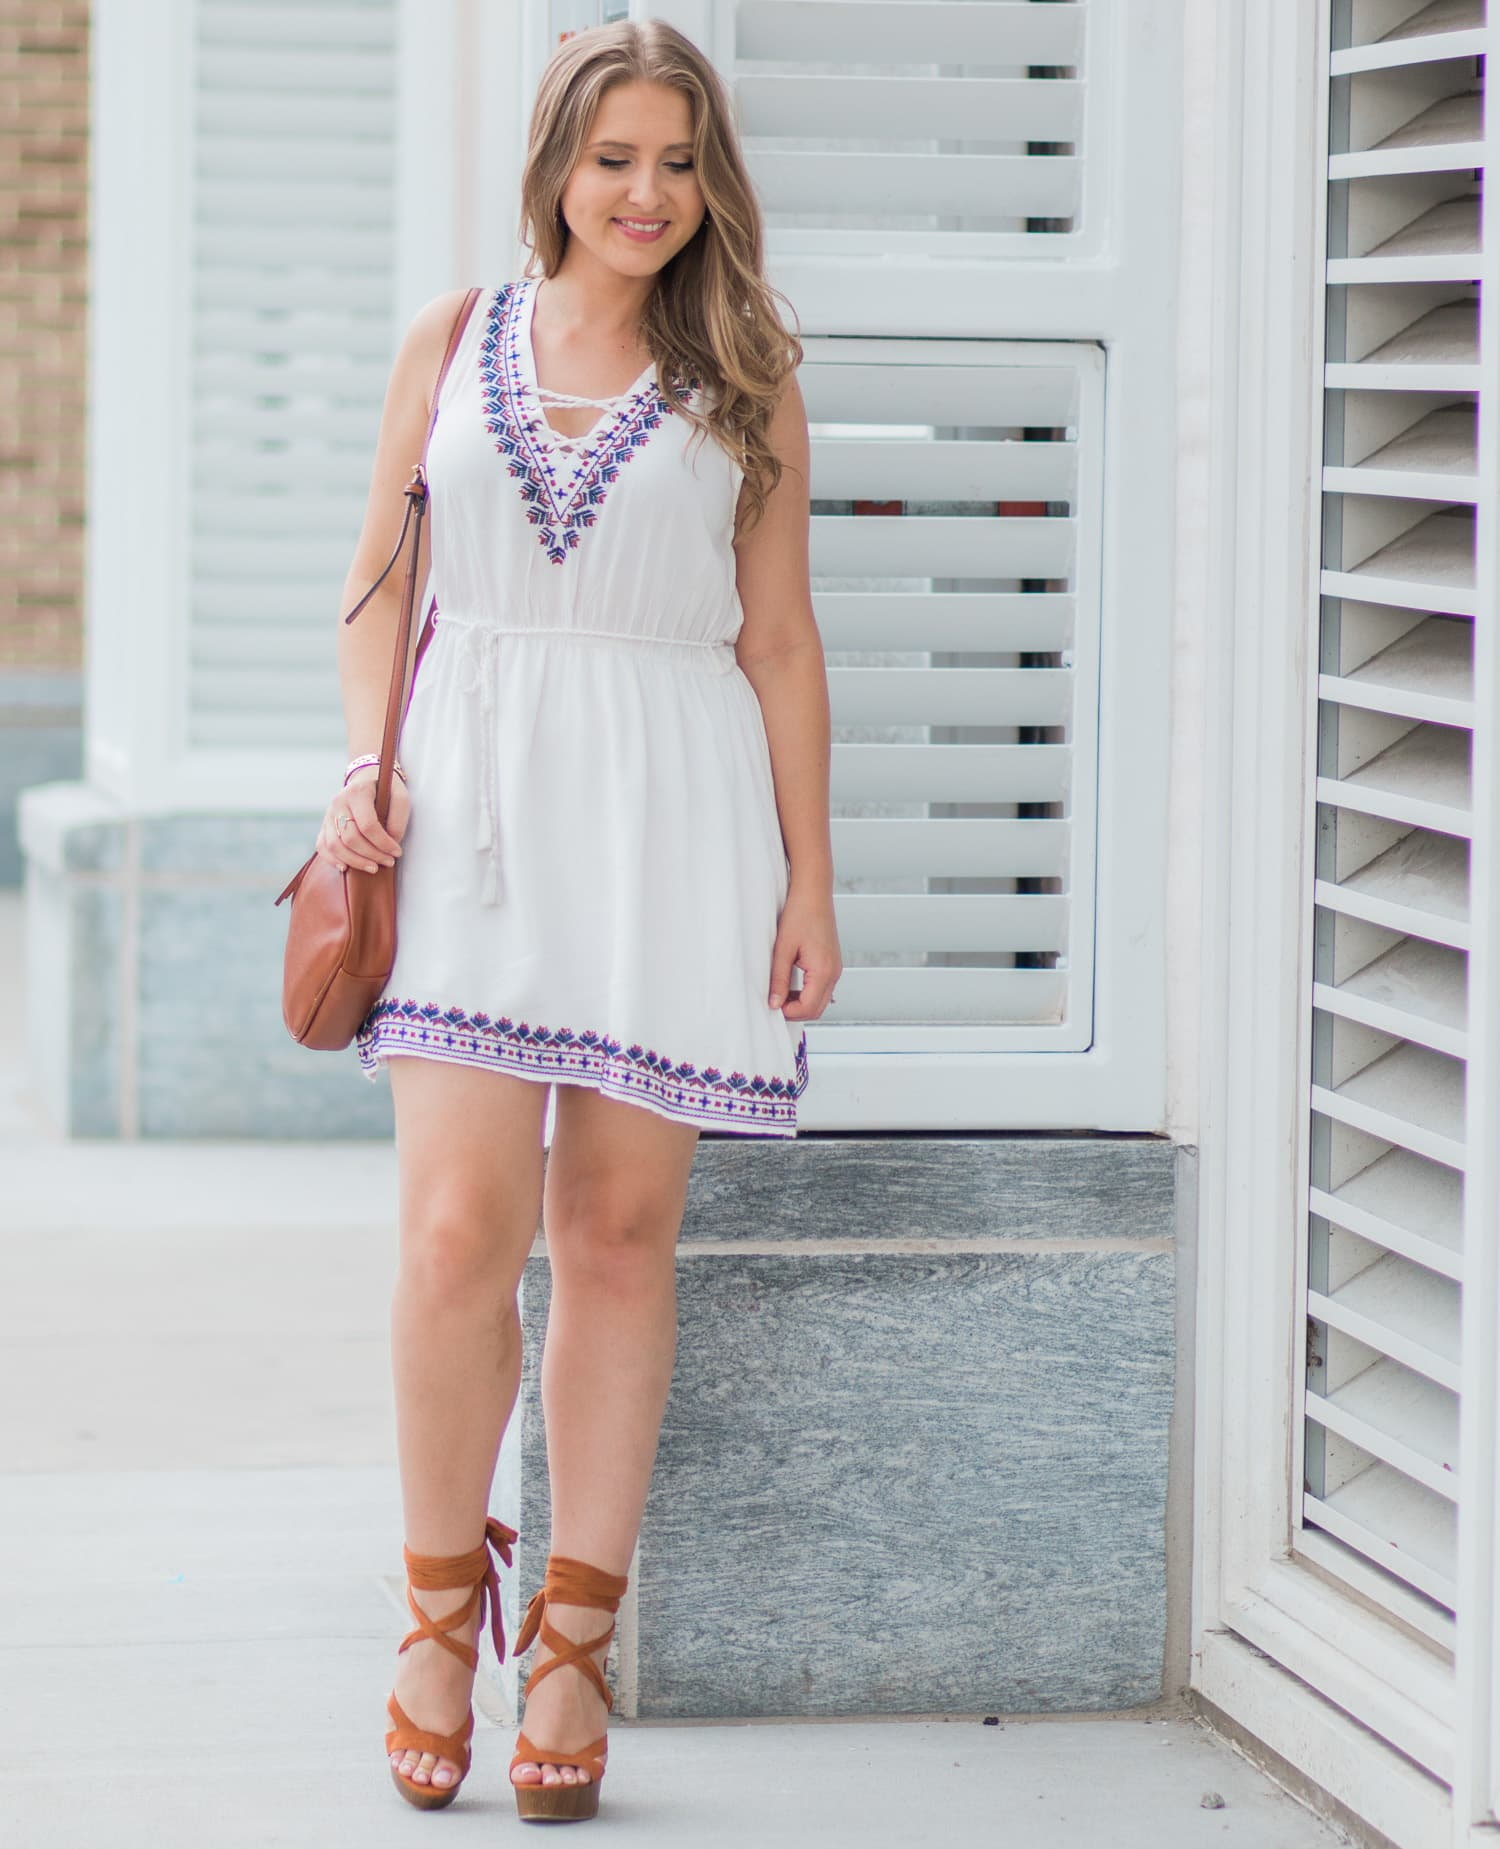 forever-21-white-embroidered-lace-up-dress-blogger-outfit-cognac-lace-up-heels-7122